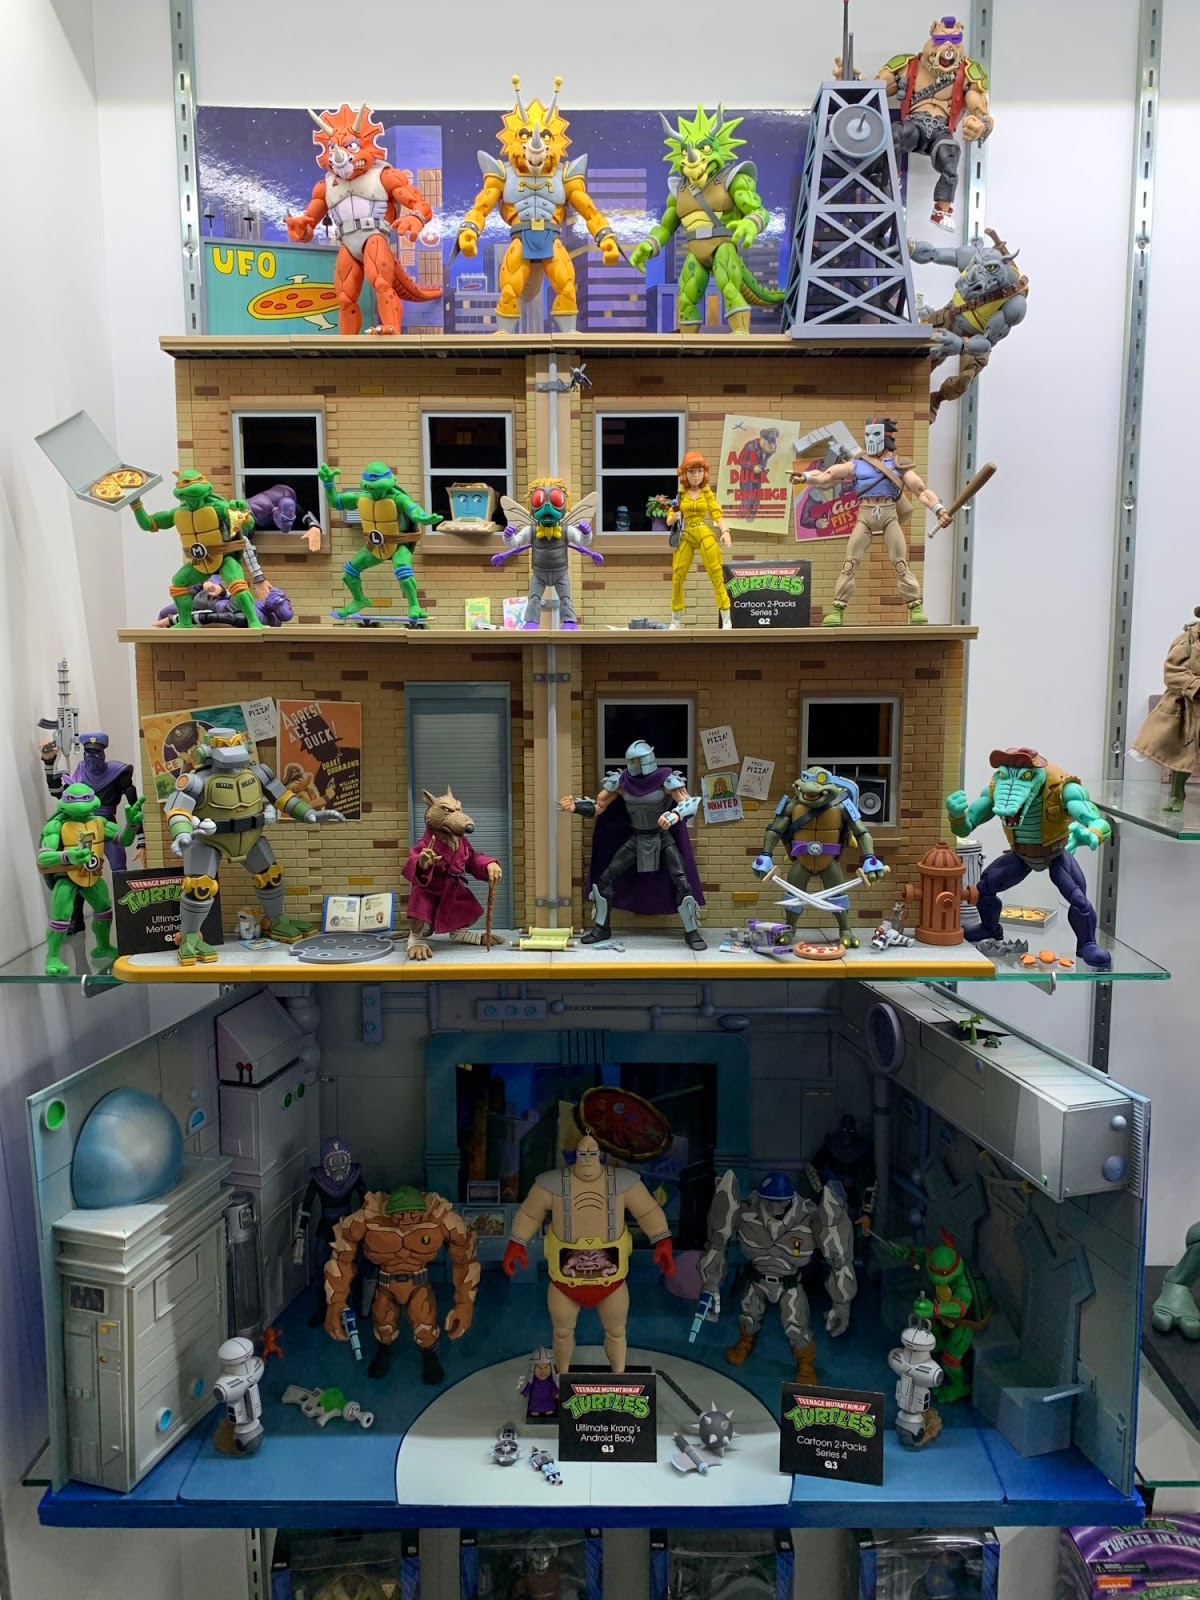 Nickalive Neca And Super7 Showcase New Tmnt Figures At Toy Fair 2020